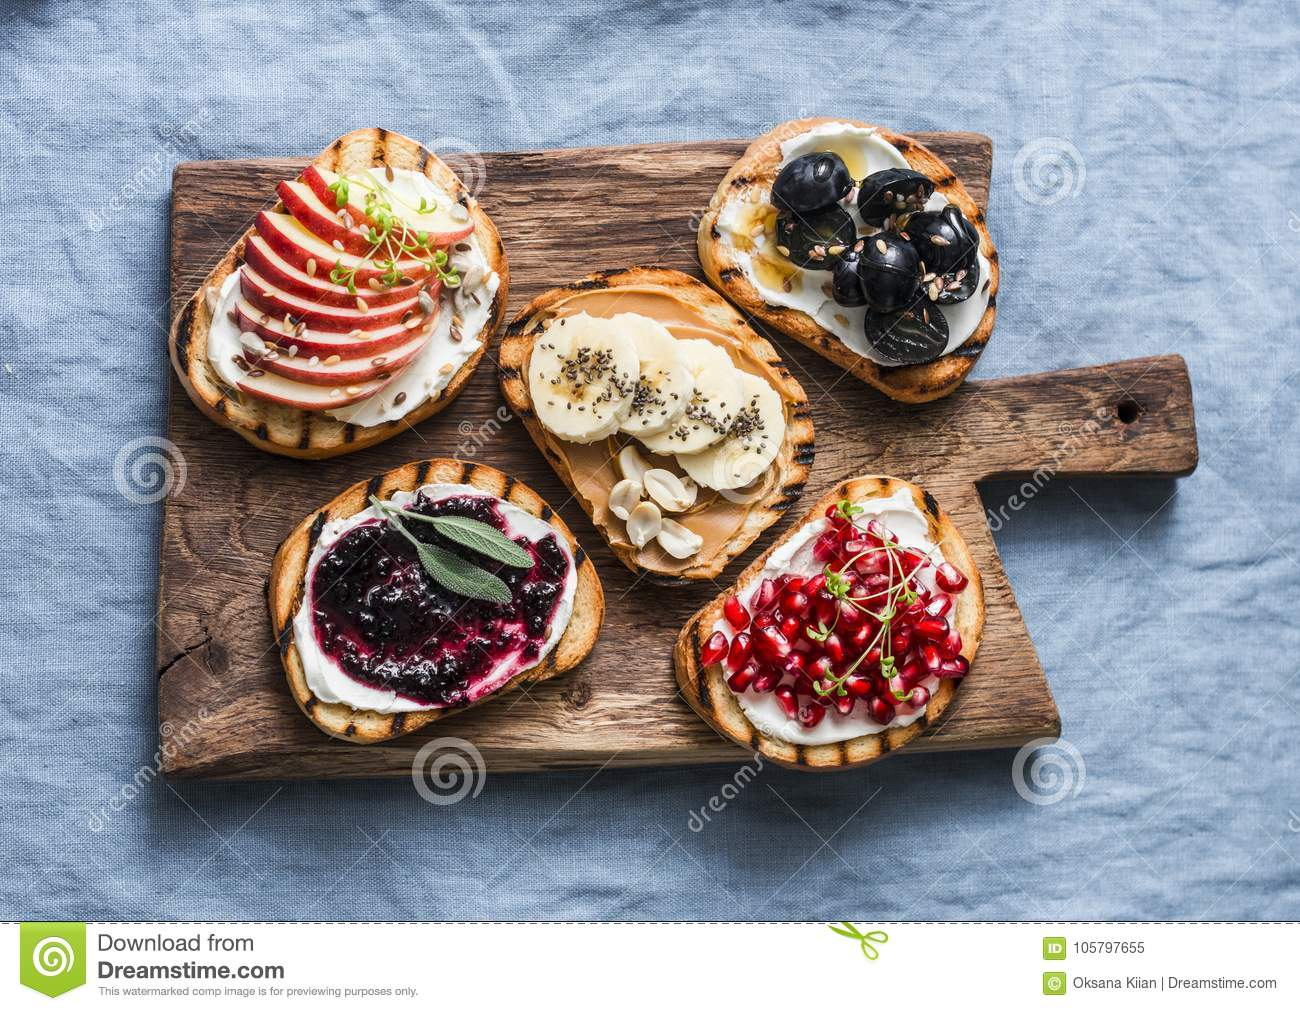 Variety grilled bread dessert small plates sandwiches with cream cheese and apple, pomegranate, jam, grapes, peanut butter, banana